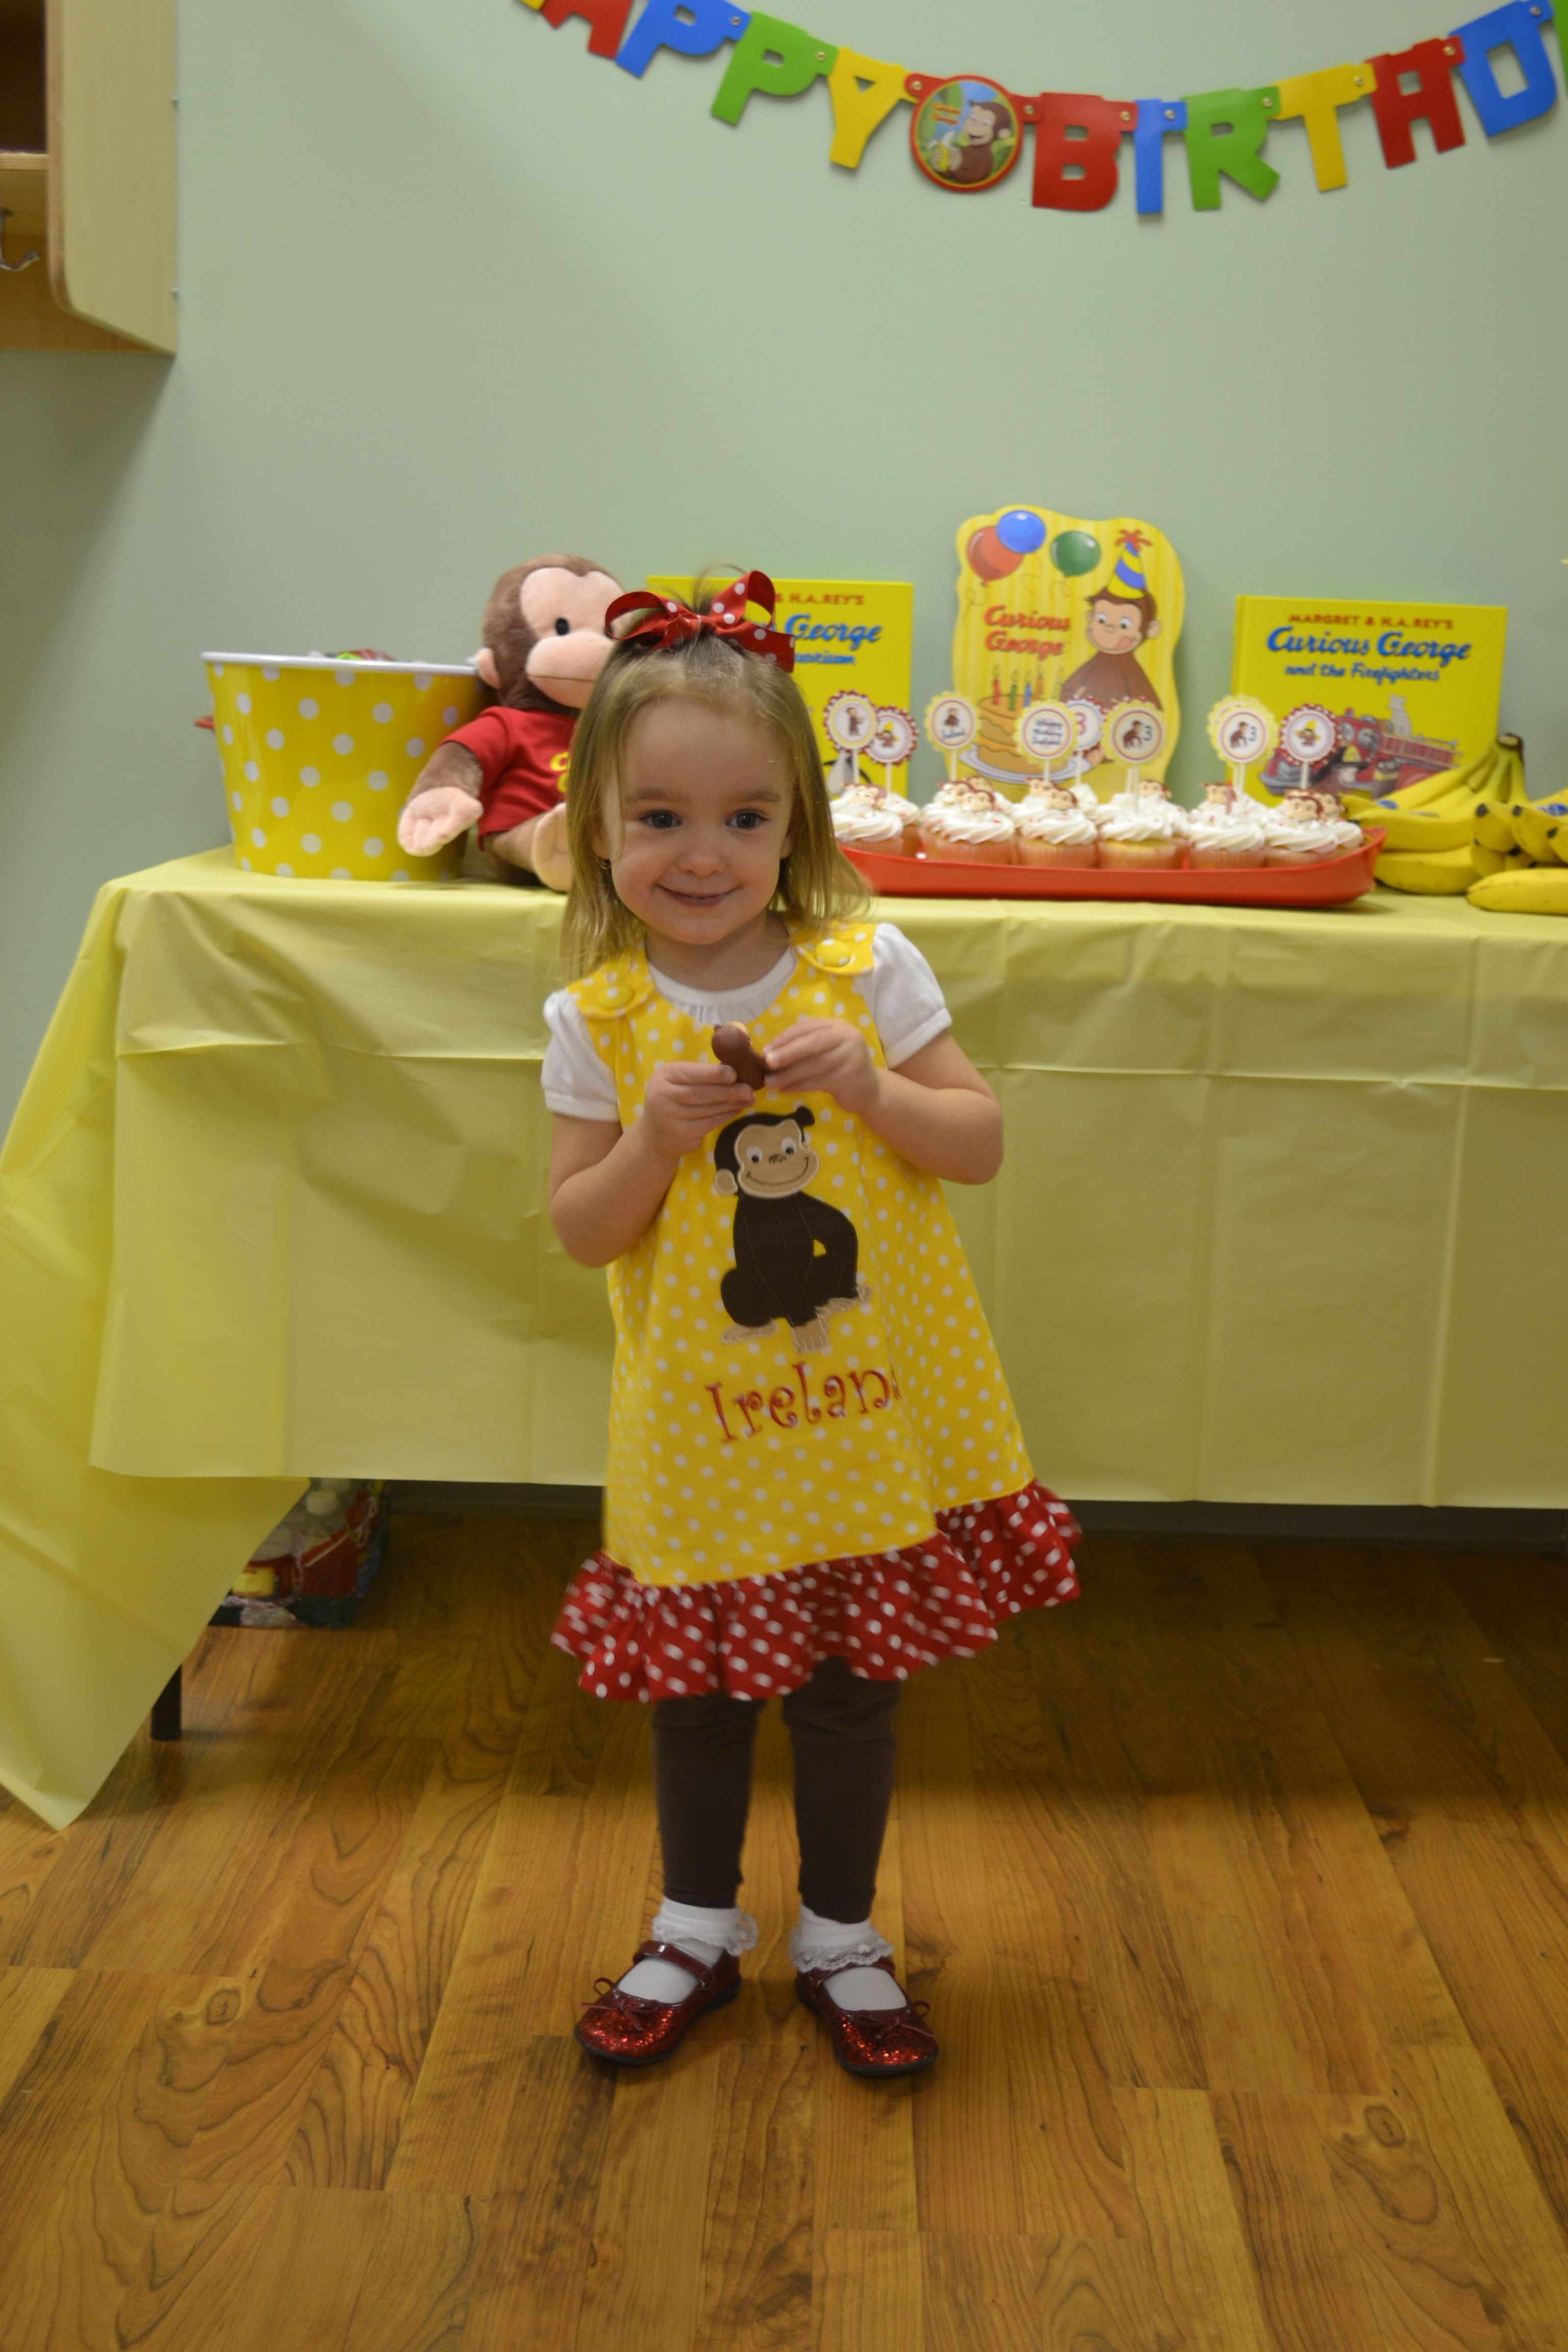 The Birthday Girl Wearing A Darling Curious George Dress